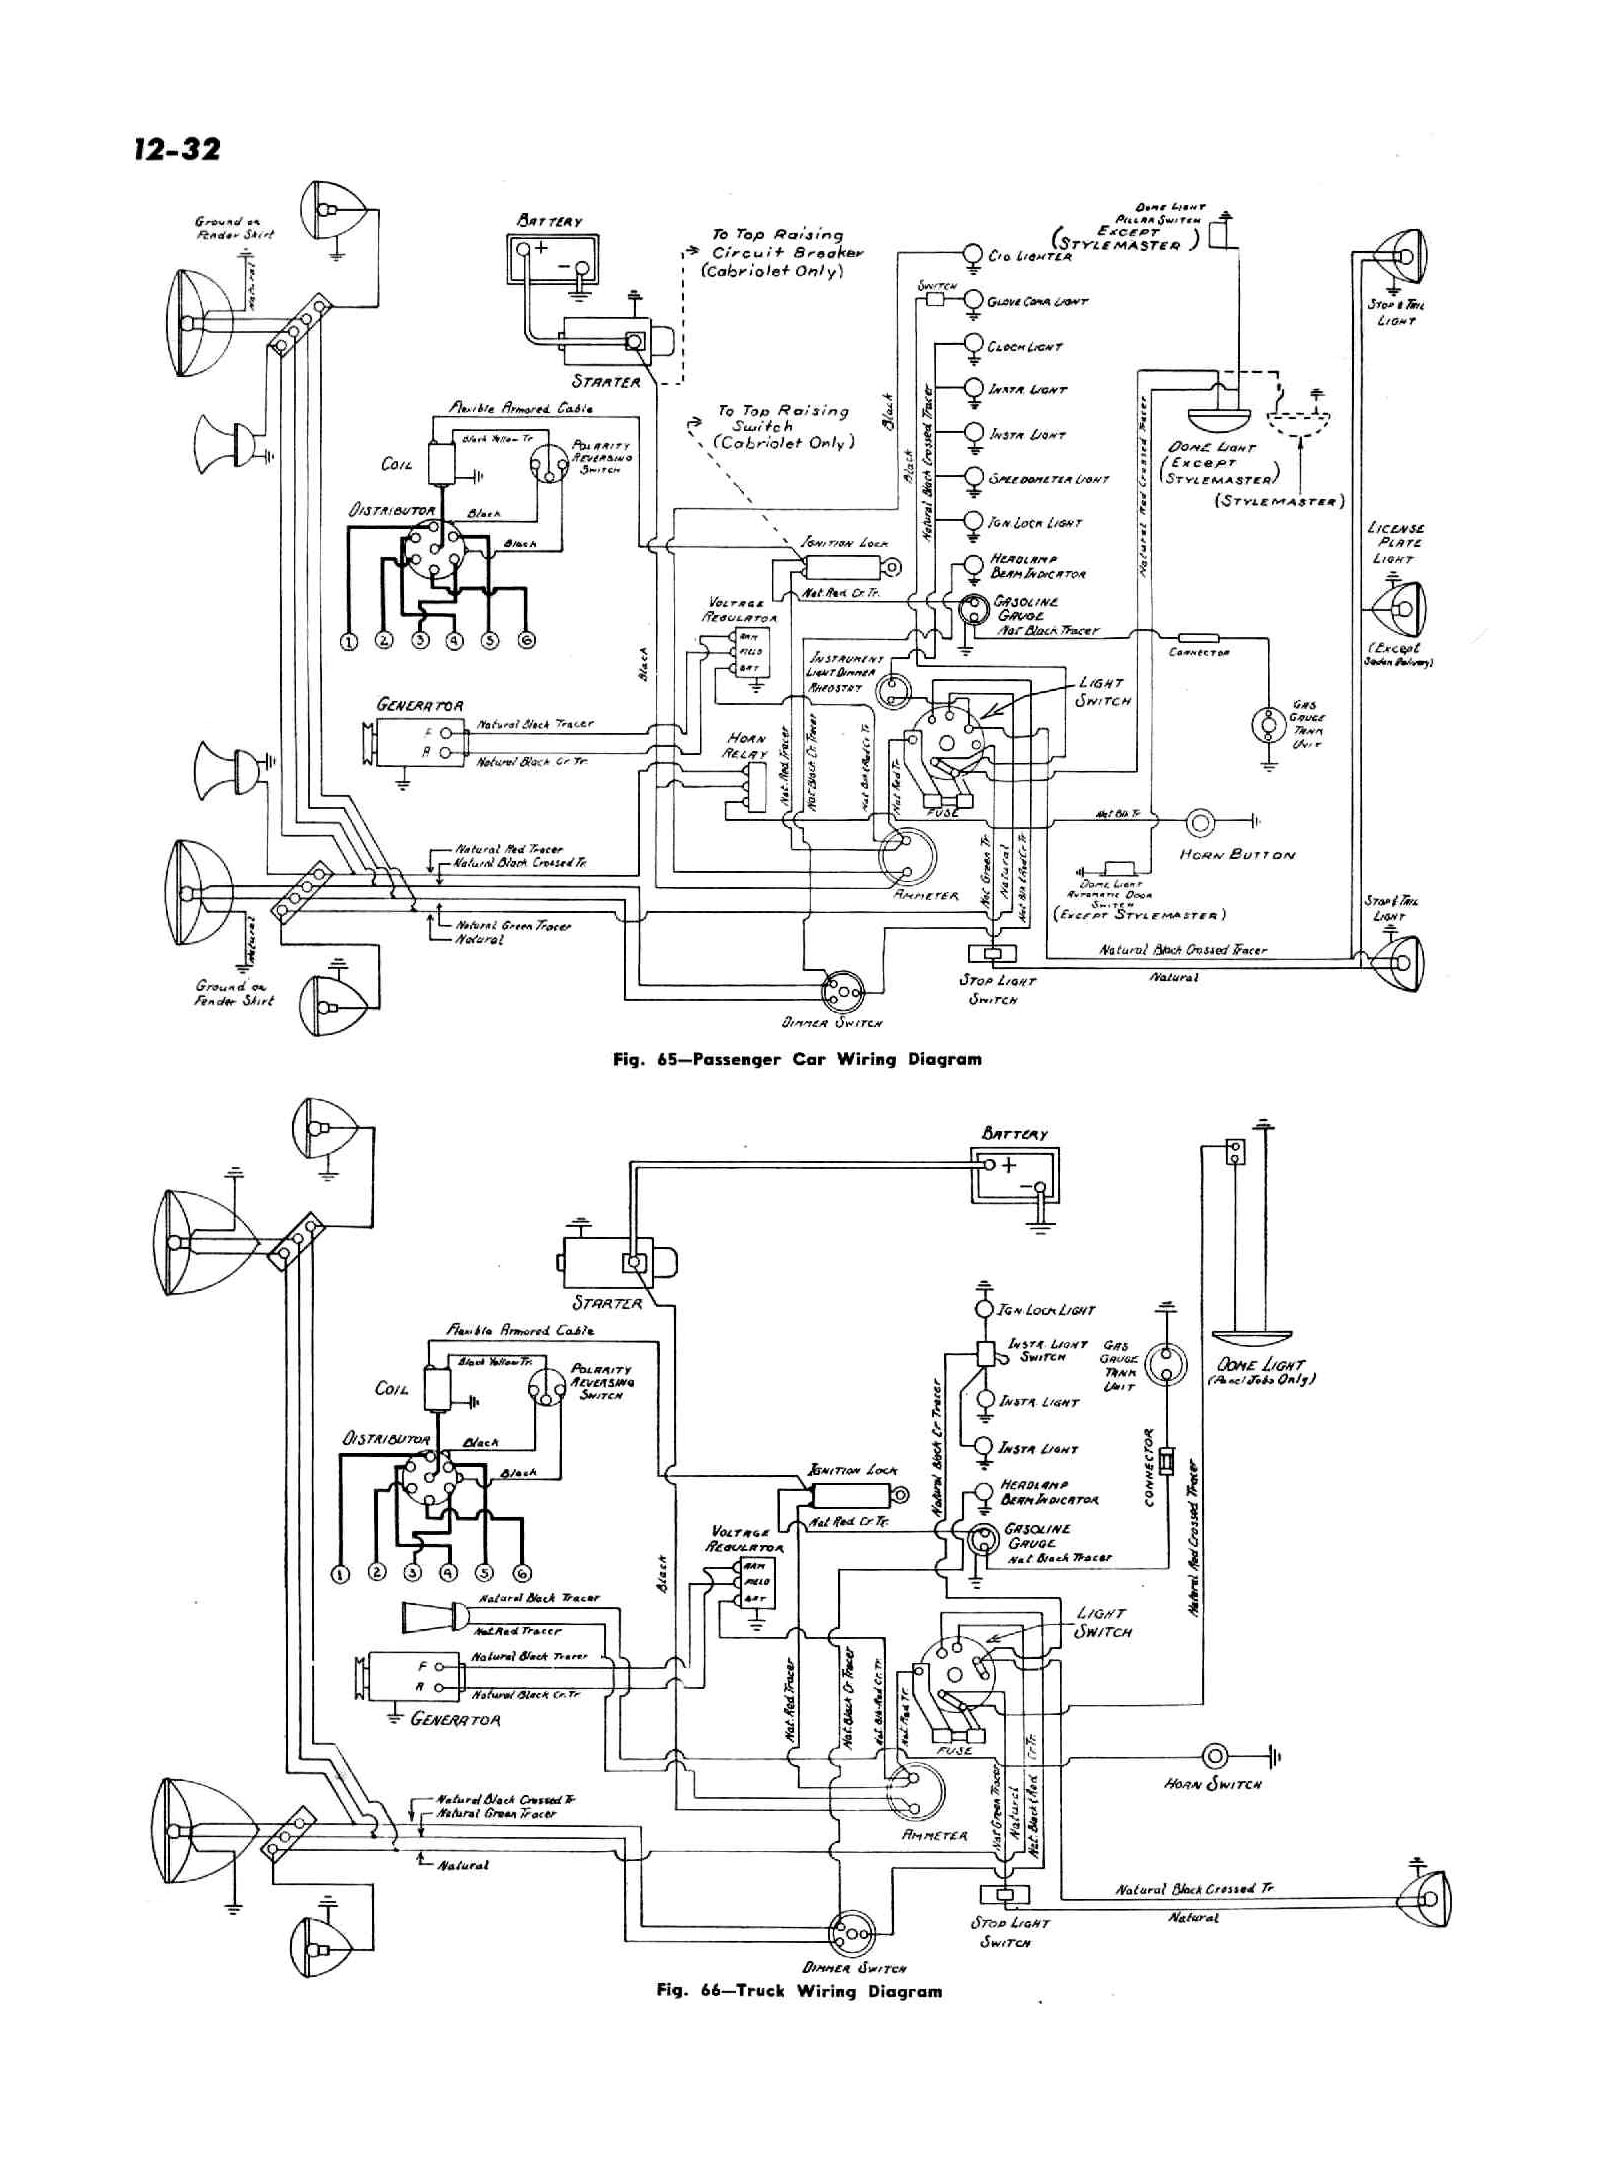 4247csm1232 chevy wiring diagrams 1977 Dodge Truck Wiring Diagram at crackthecode.co